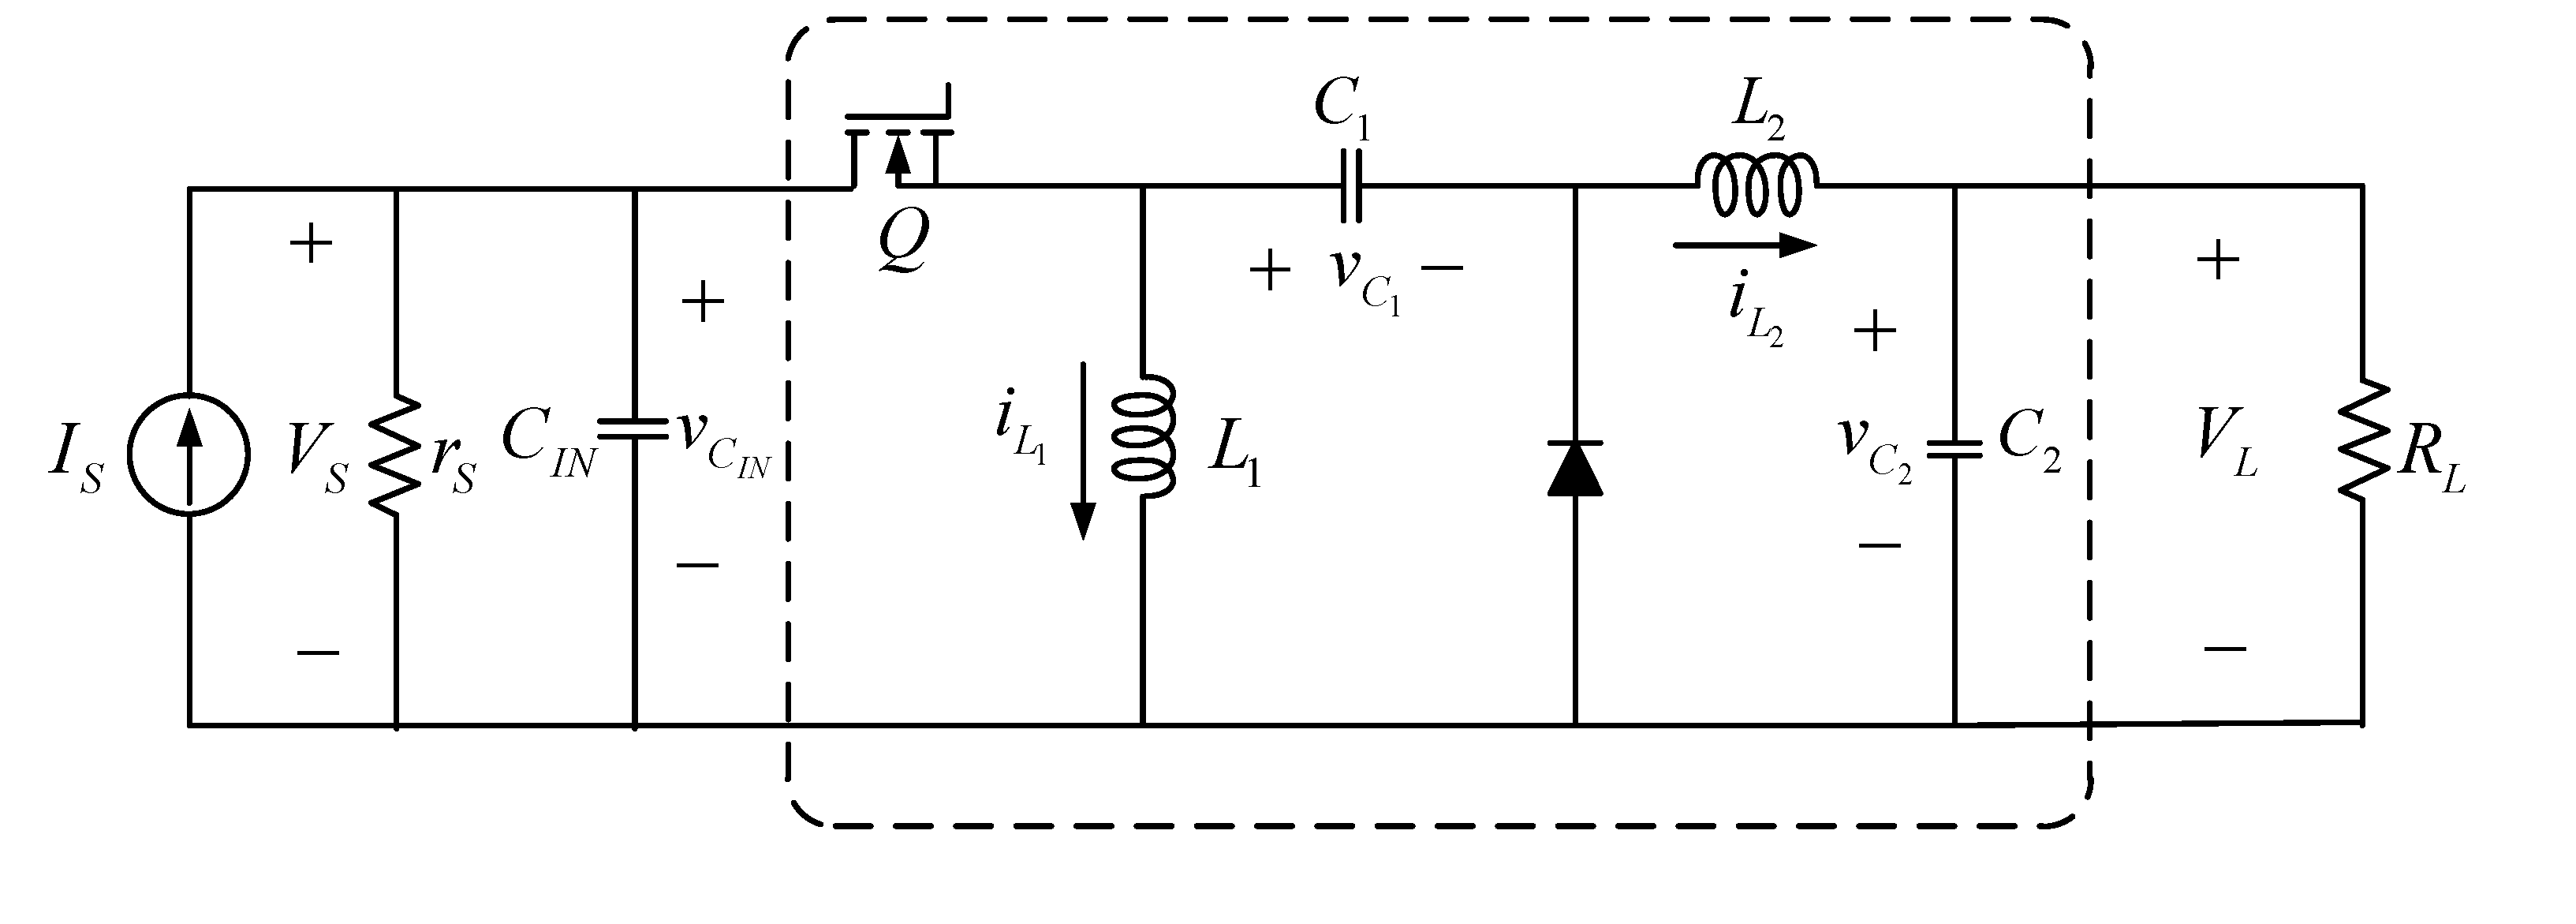 circuit diagram of buck boost converter carrier wiring energies free full text simulation for solar